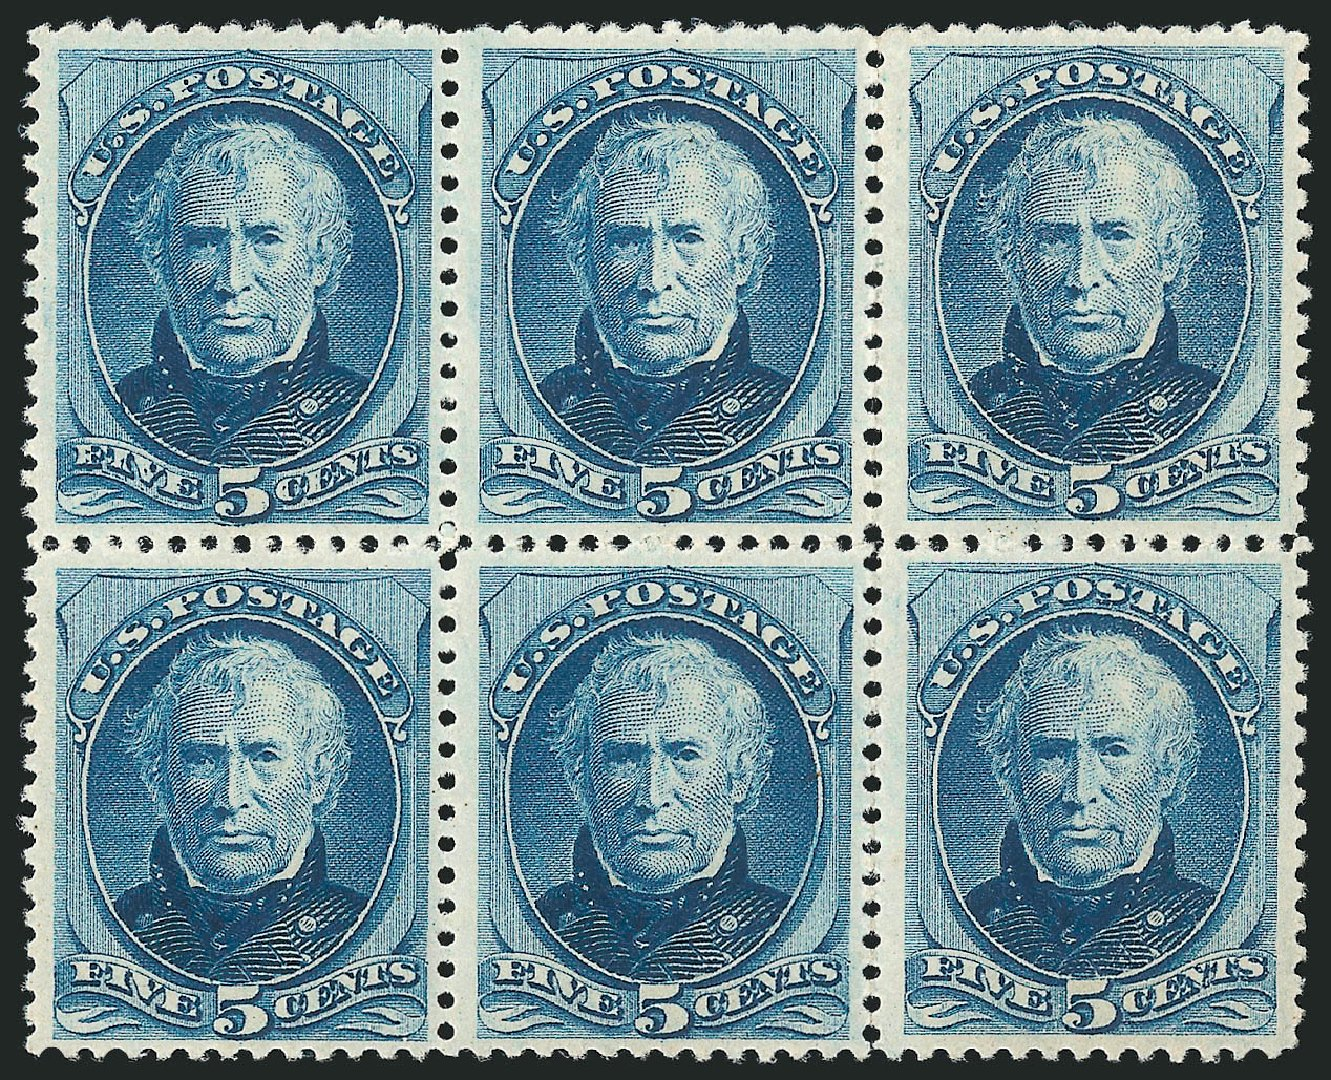 Costs of US Stamp Scott Catalog 185: 1879 5c Taylor. Robert Siegel Auction Galleries, Apr 2015, Sale 1096, Lot 331